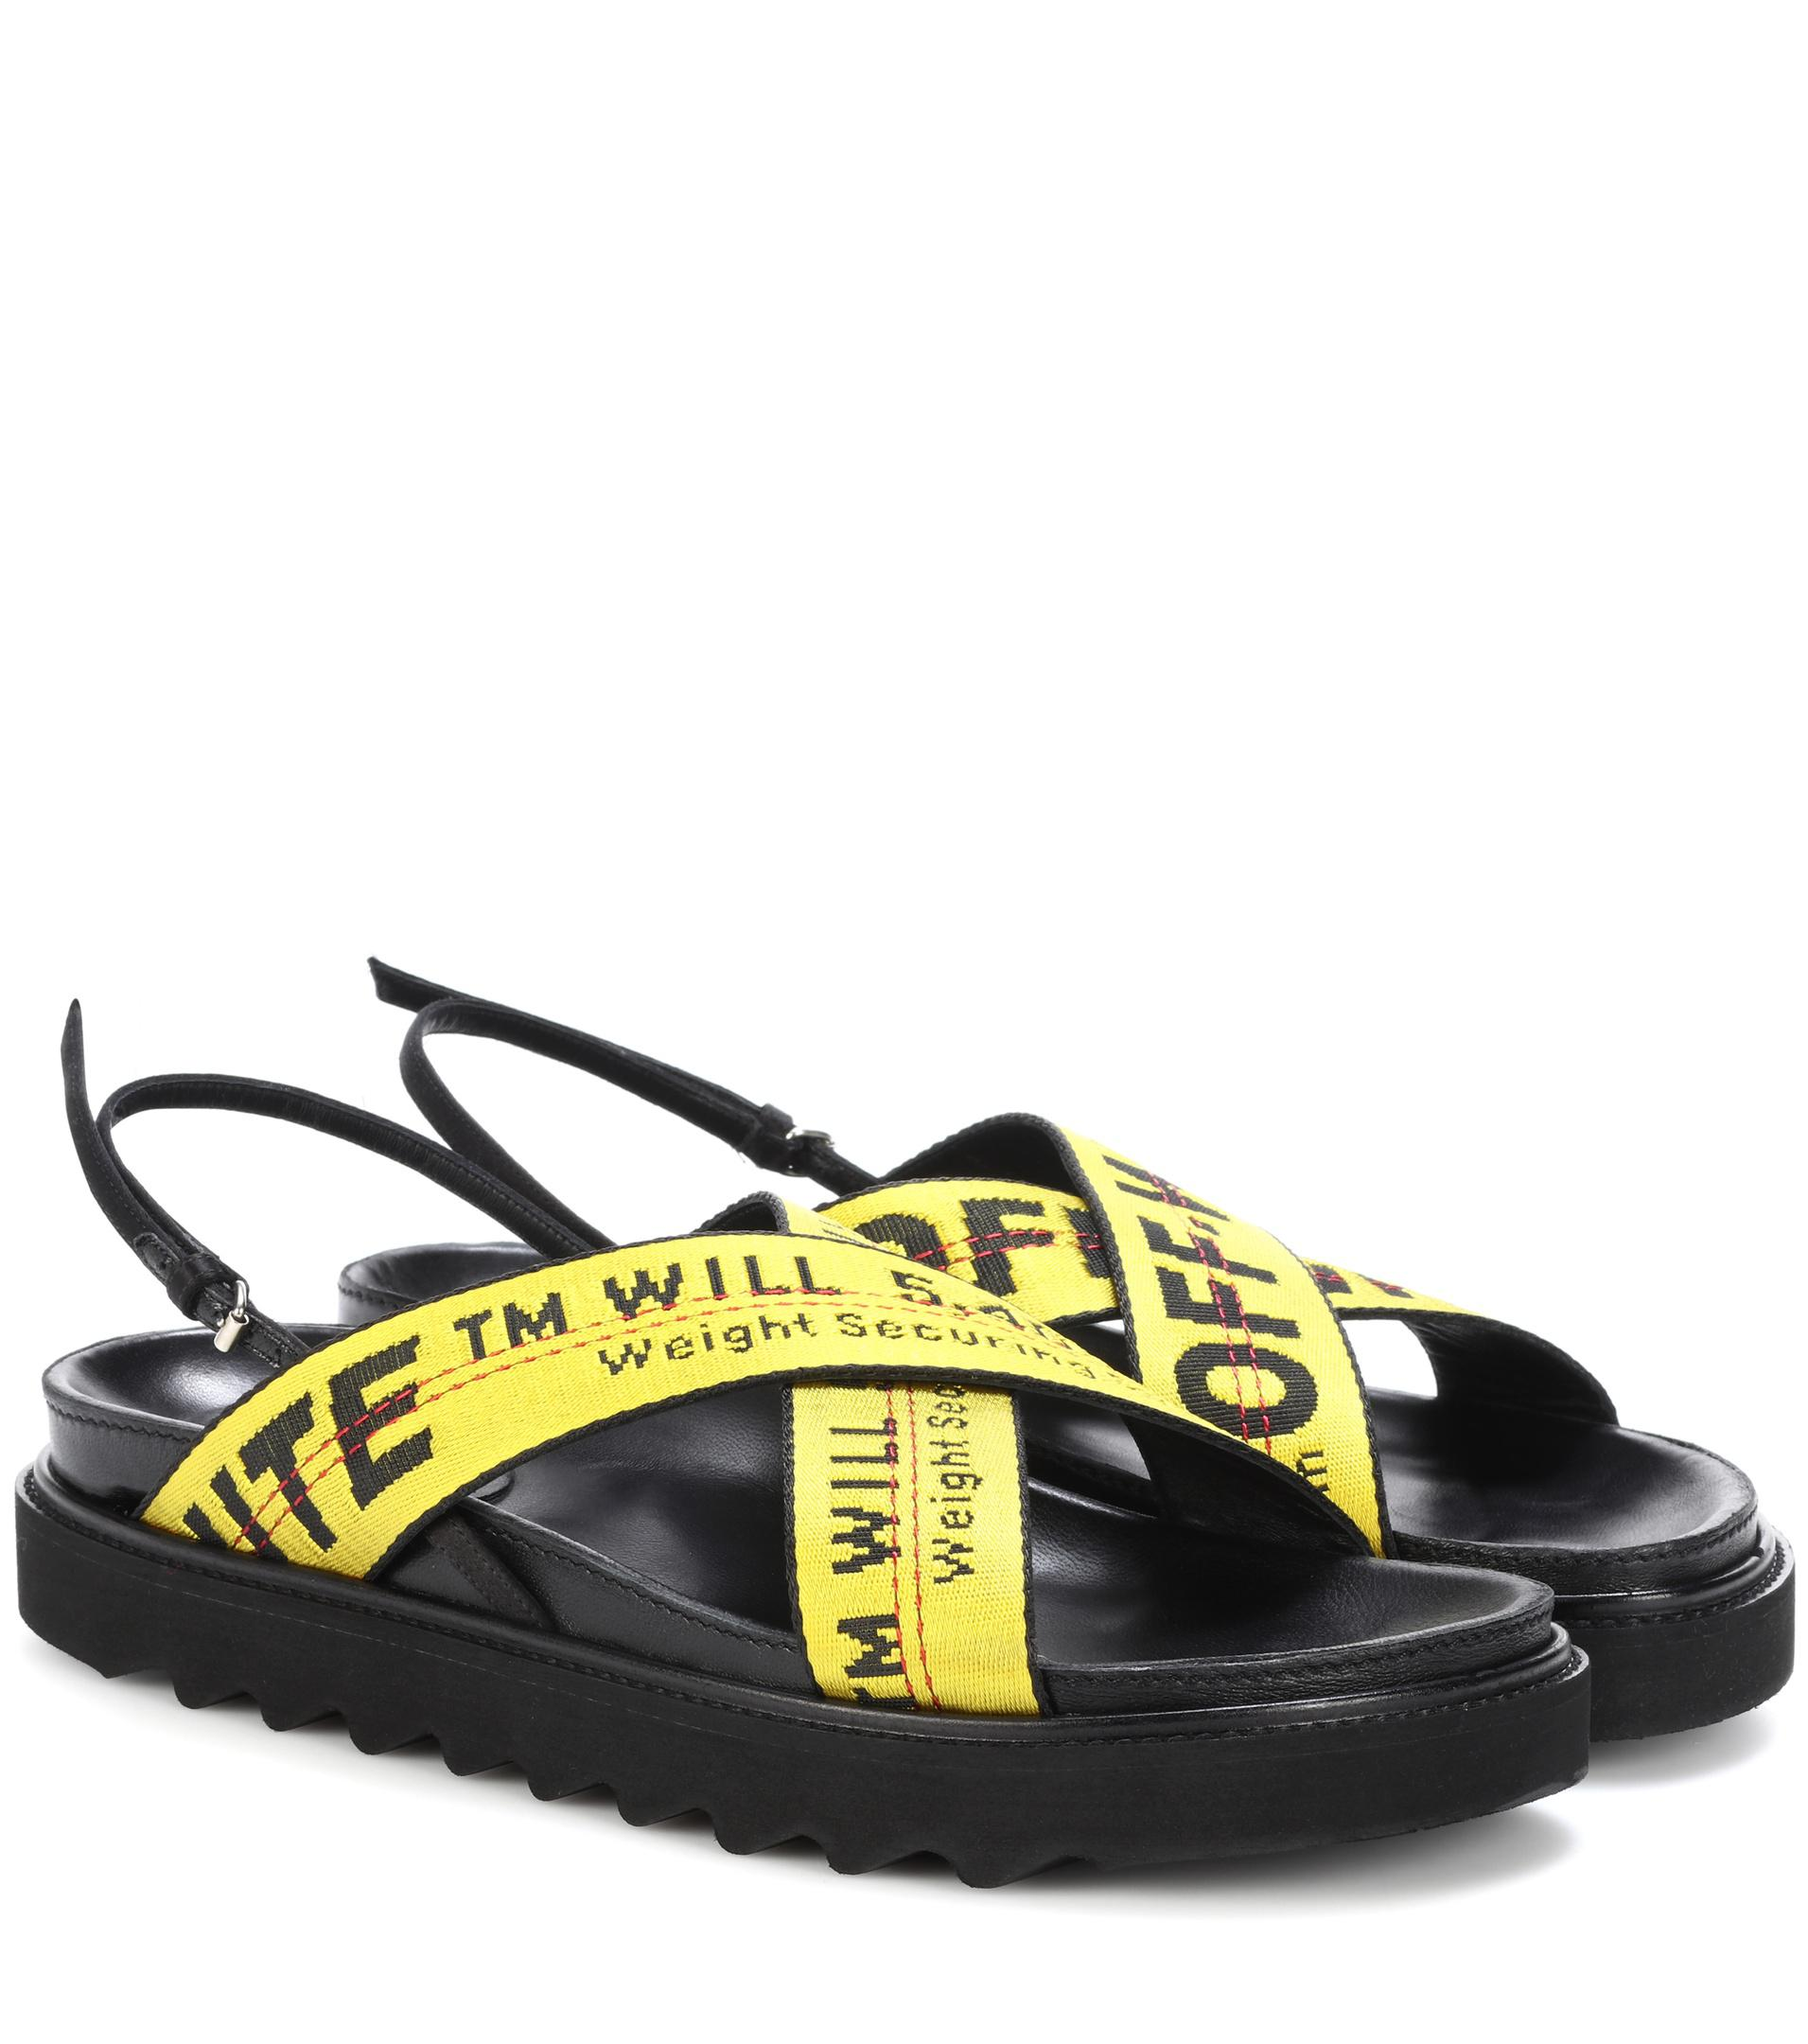 Off-White C/O Virgil Abloh LOGO Slider - Black/Yellow Slides Sandal